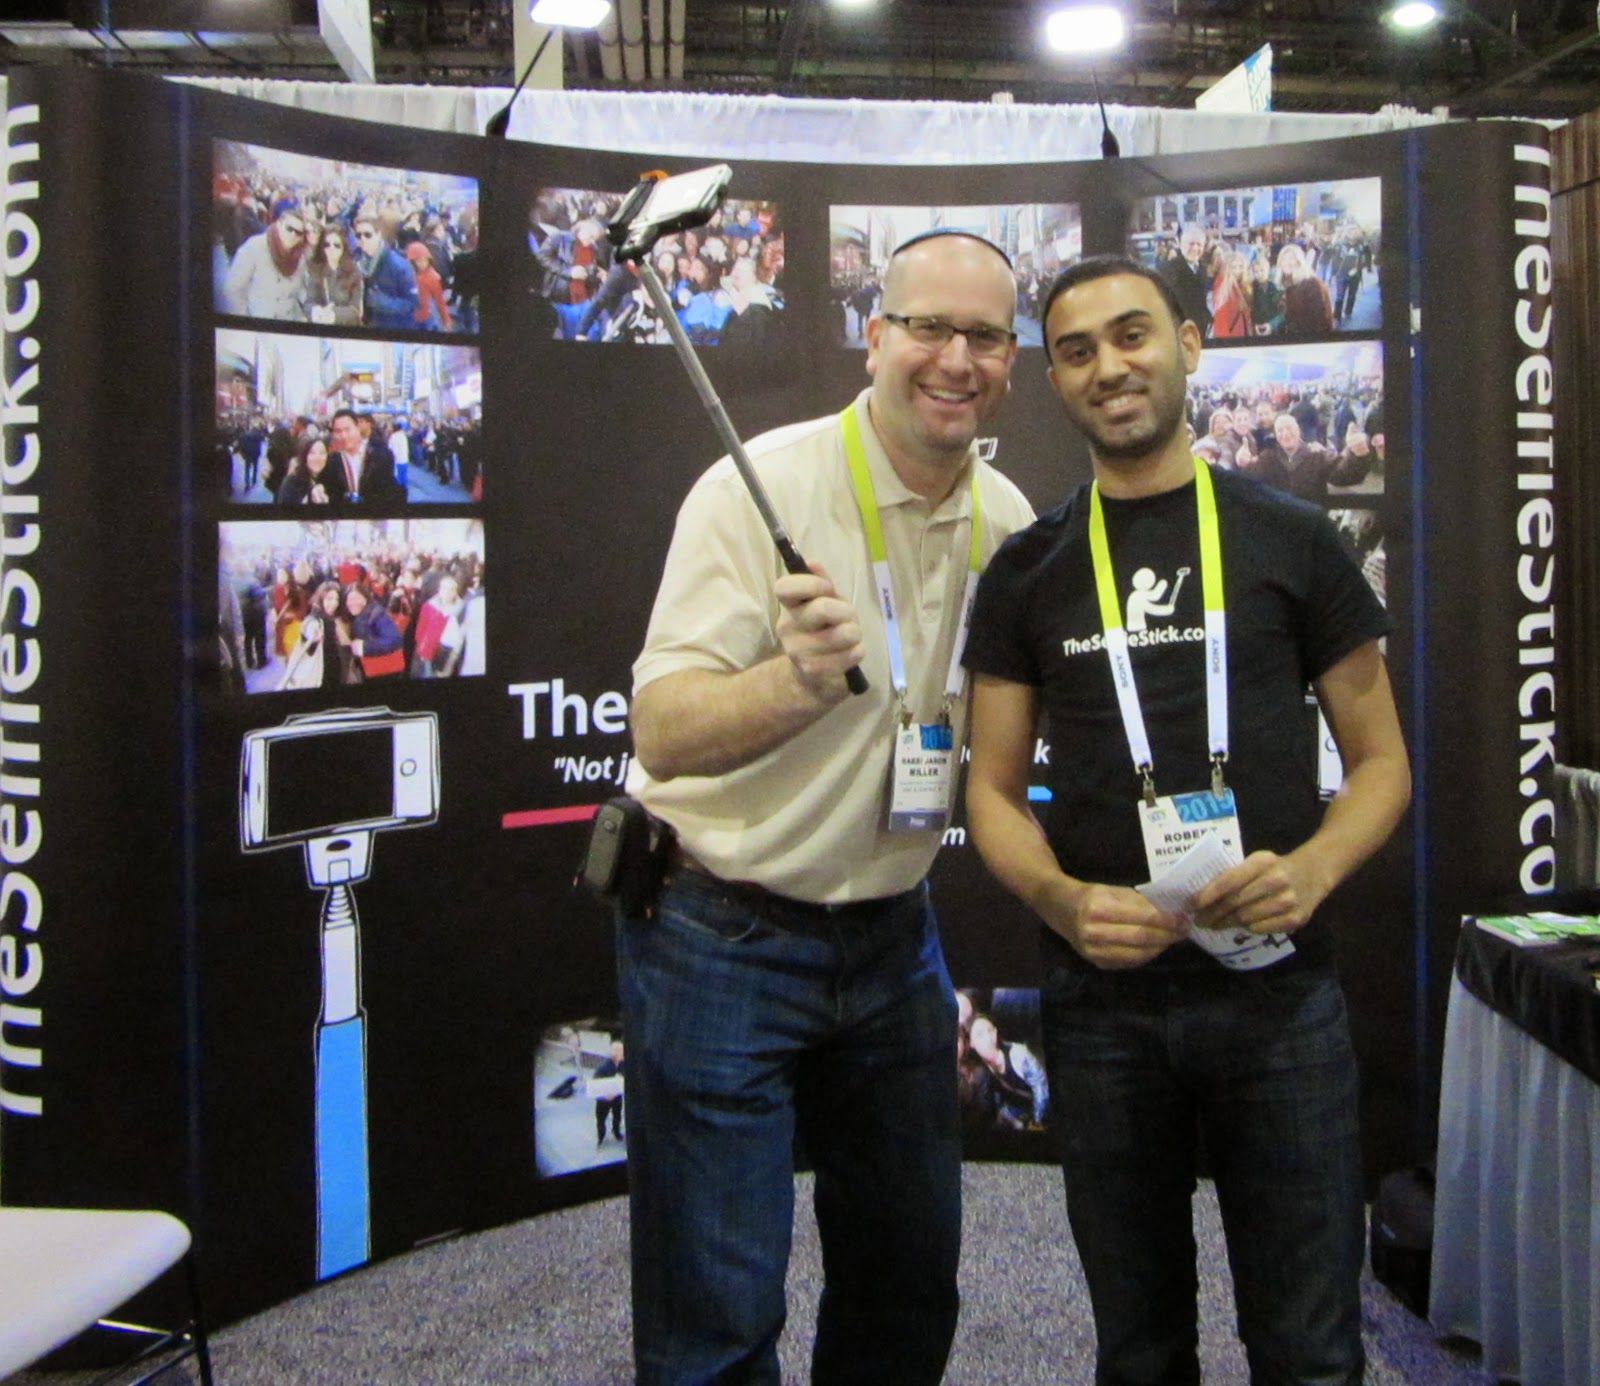 SelfieStick at CES 2015